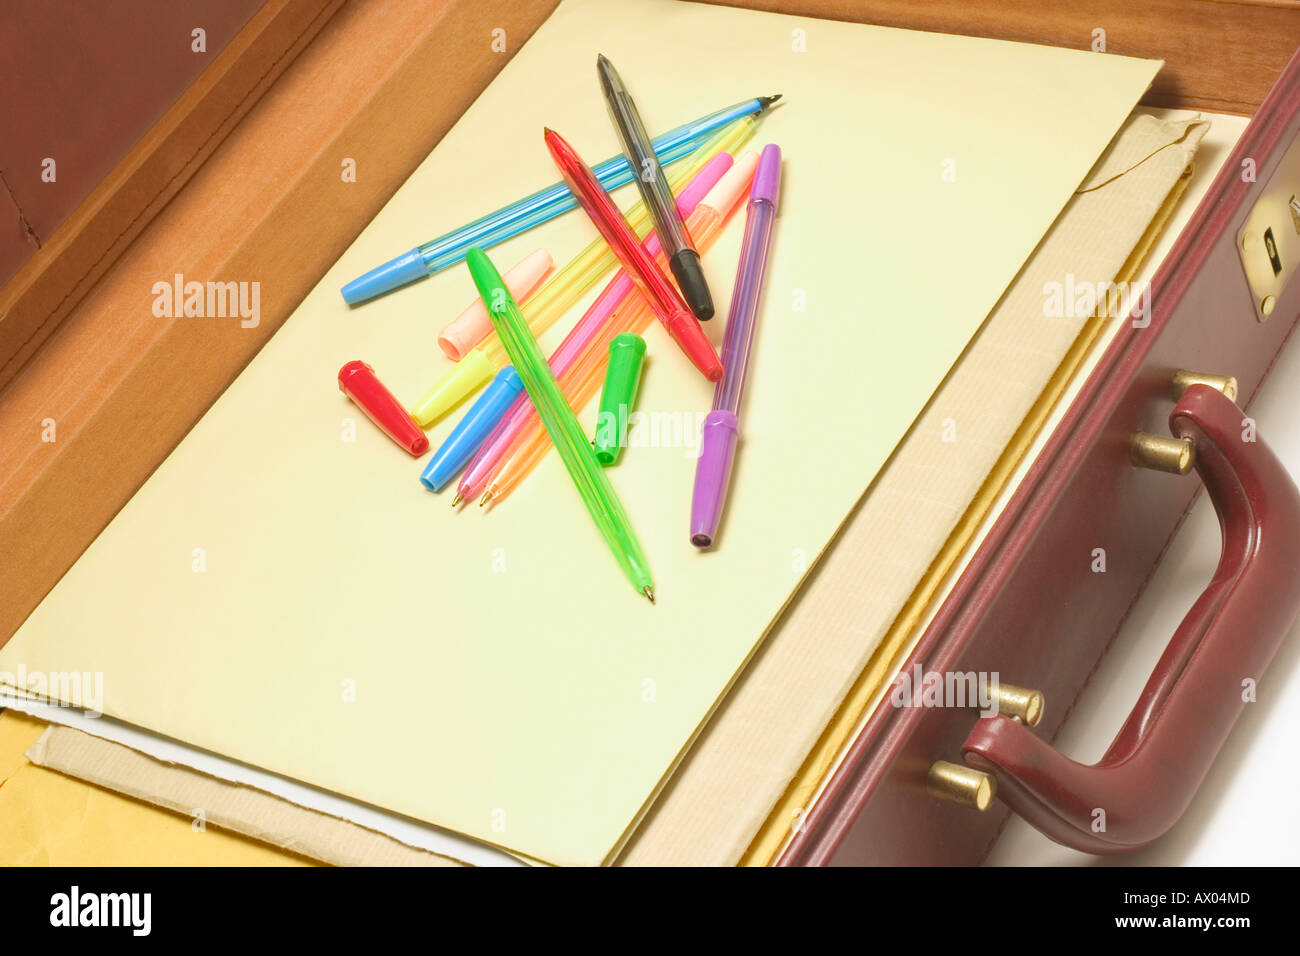 Ballpoint Pens and Files in Briefcase - Stock Image